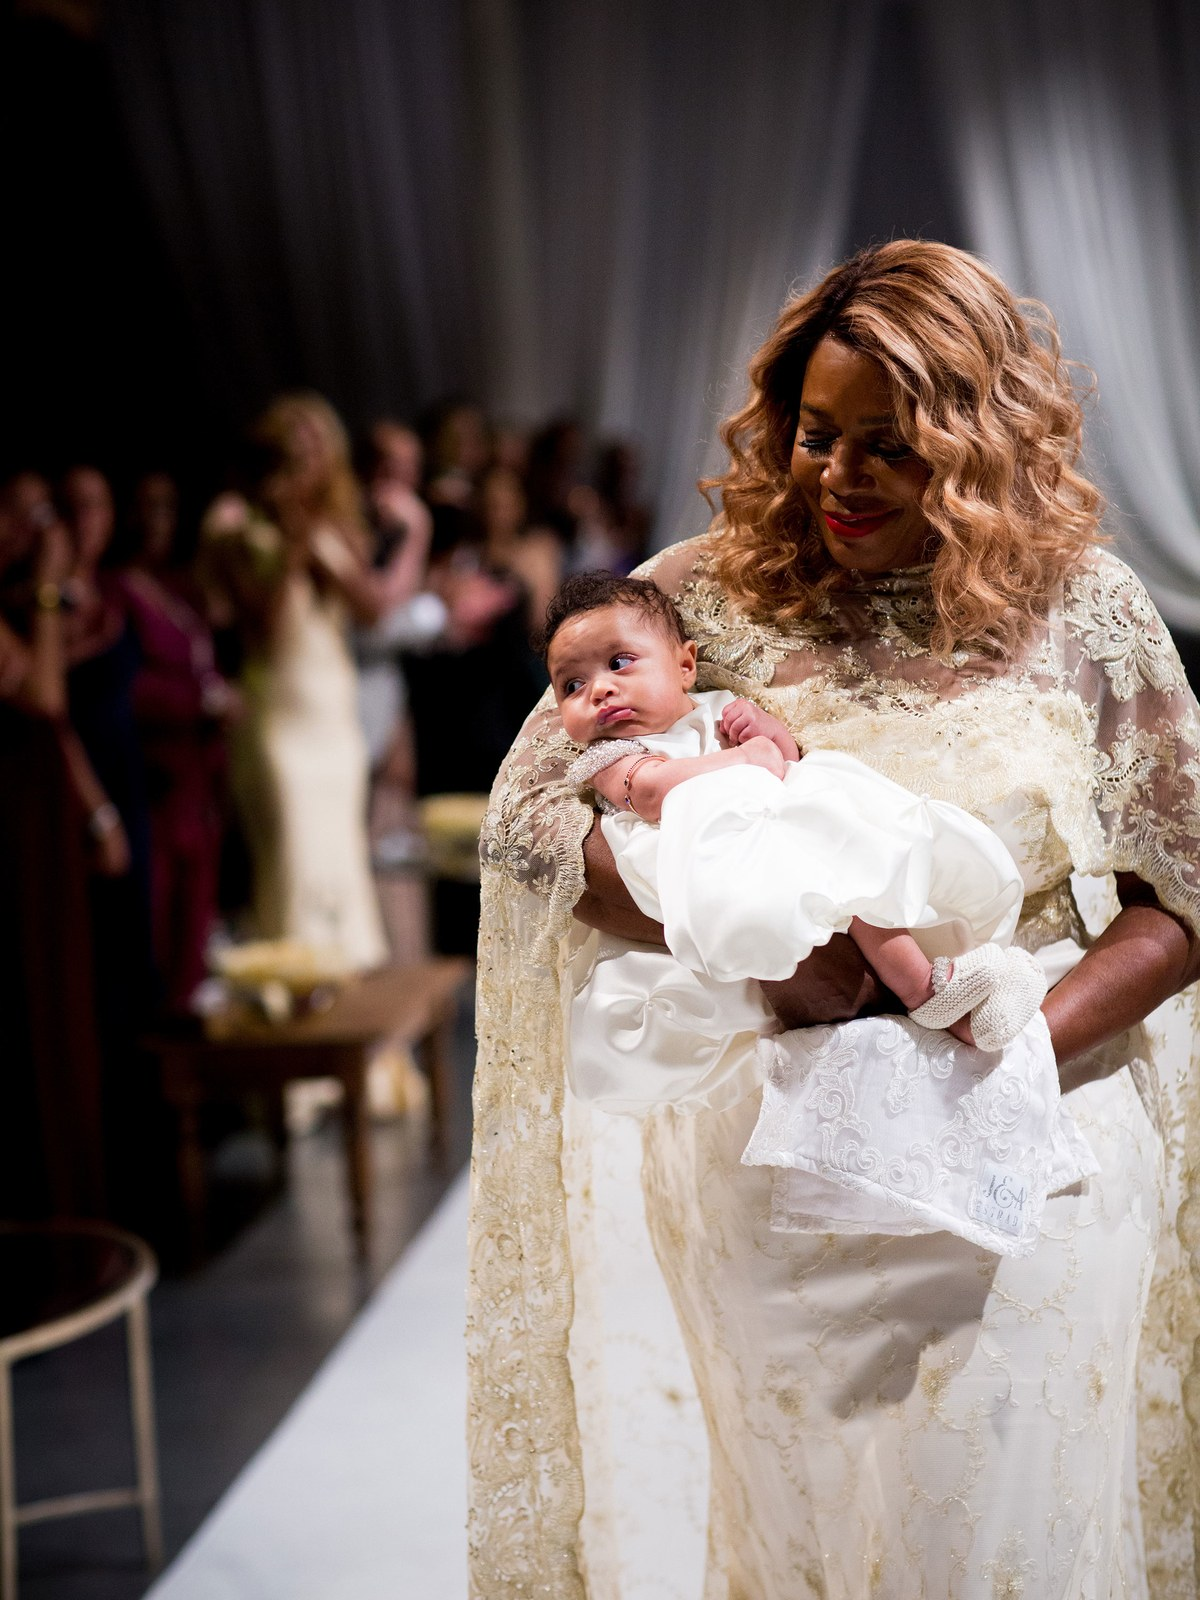 Serena Williams and Alexis Ohanian's Wedding - OLORISUPERGAL